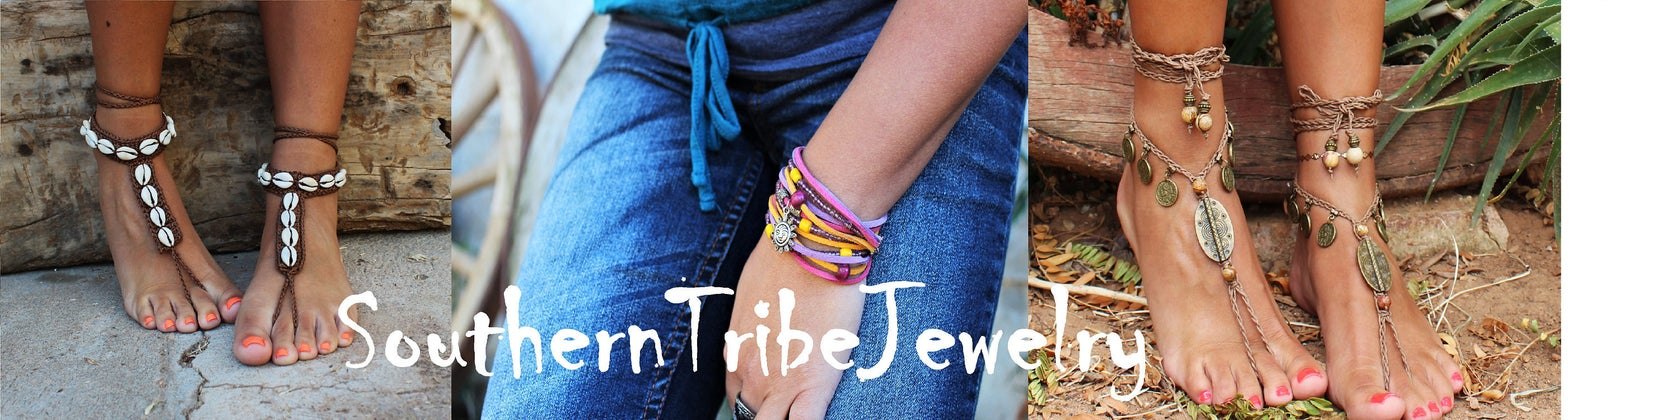 Southern Tribe Jewelry shop banner